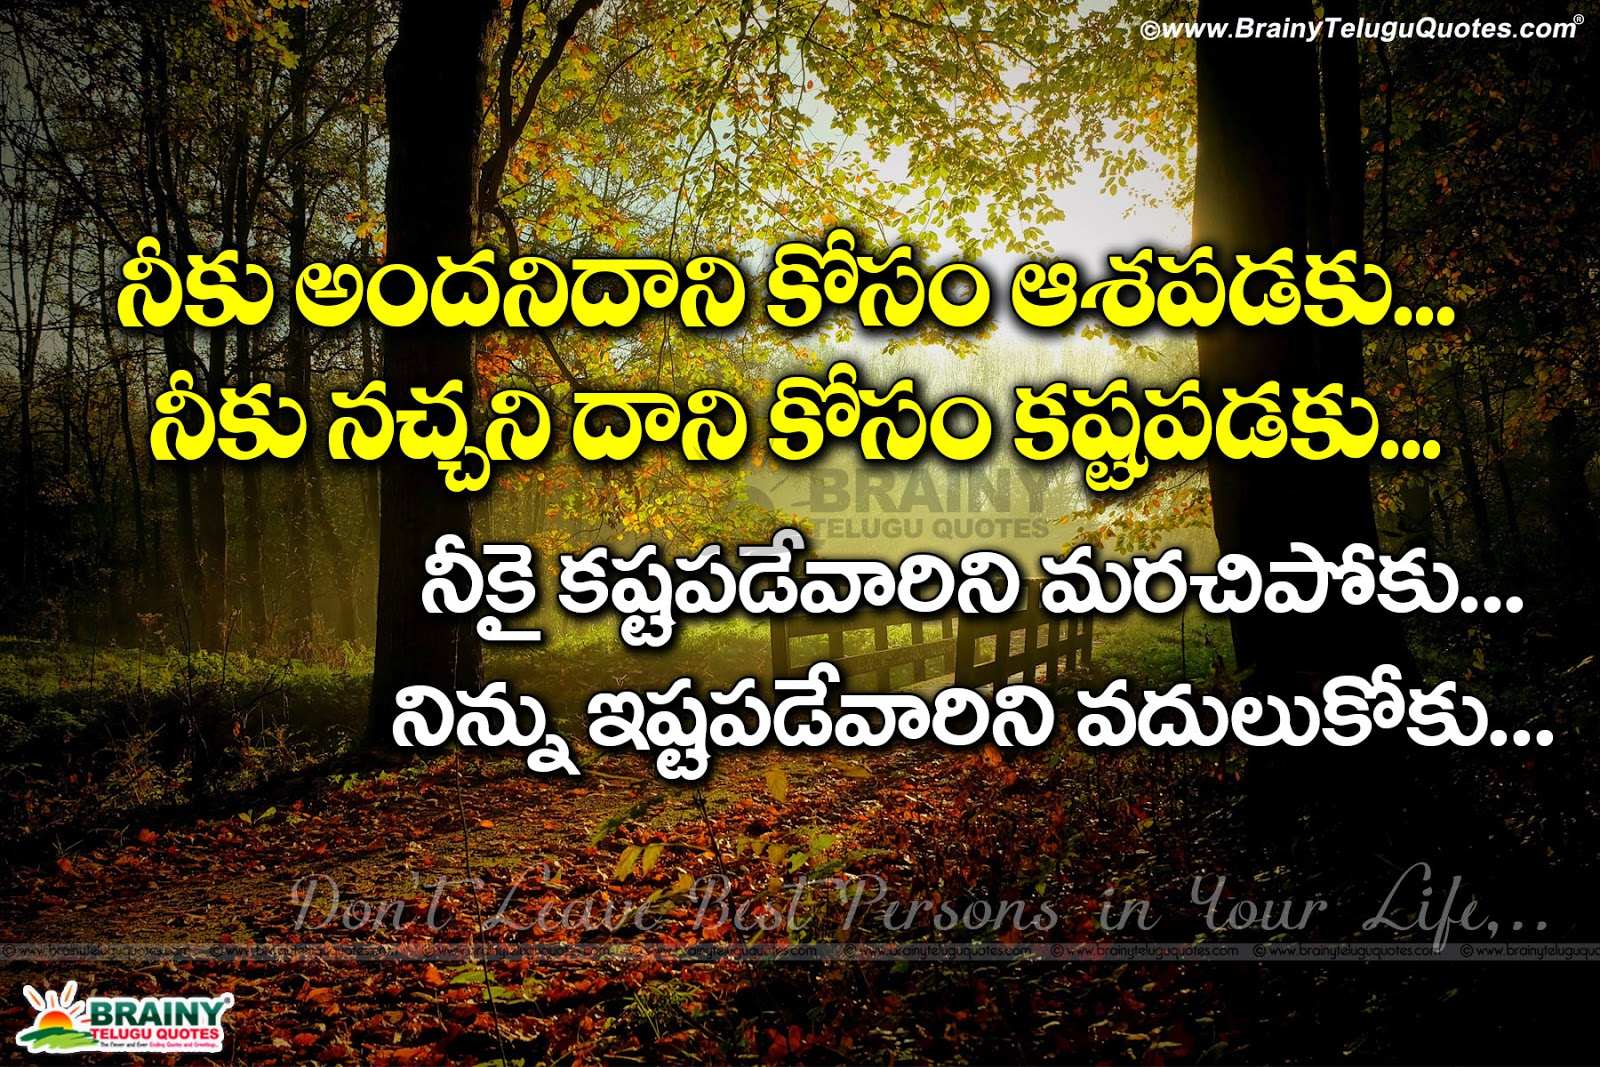 Brainy Quotes Motivational Life Quotes Messages In Telugutelugu Life Quotes